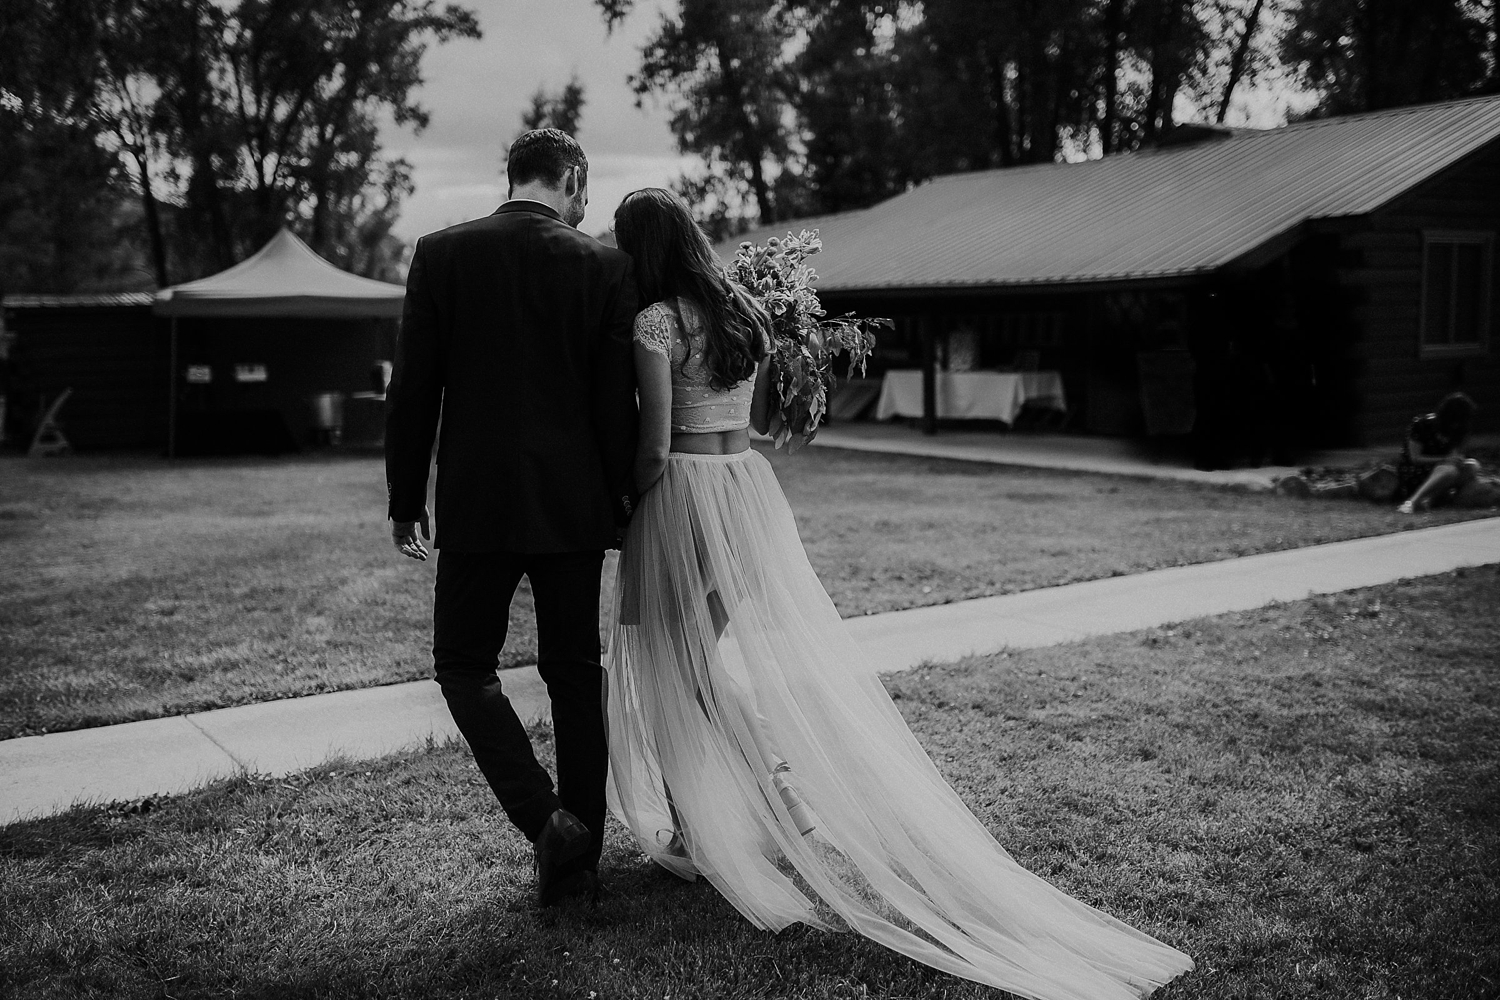 Alicia+lucia+photography+-+albuquerque+wedding+photographer+-+santa+fe+wedding+photography+-+new+mexico+wedding+photographer+-+pagosa+springs+wedding+-+destination+wedding_0033.jpg